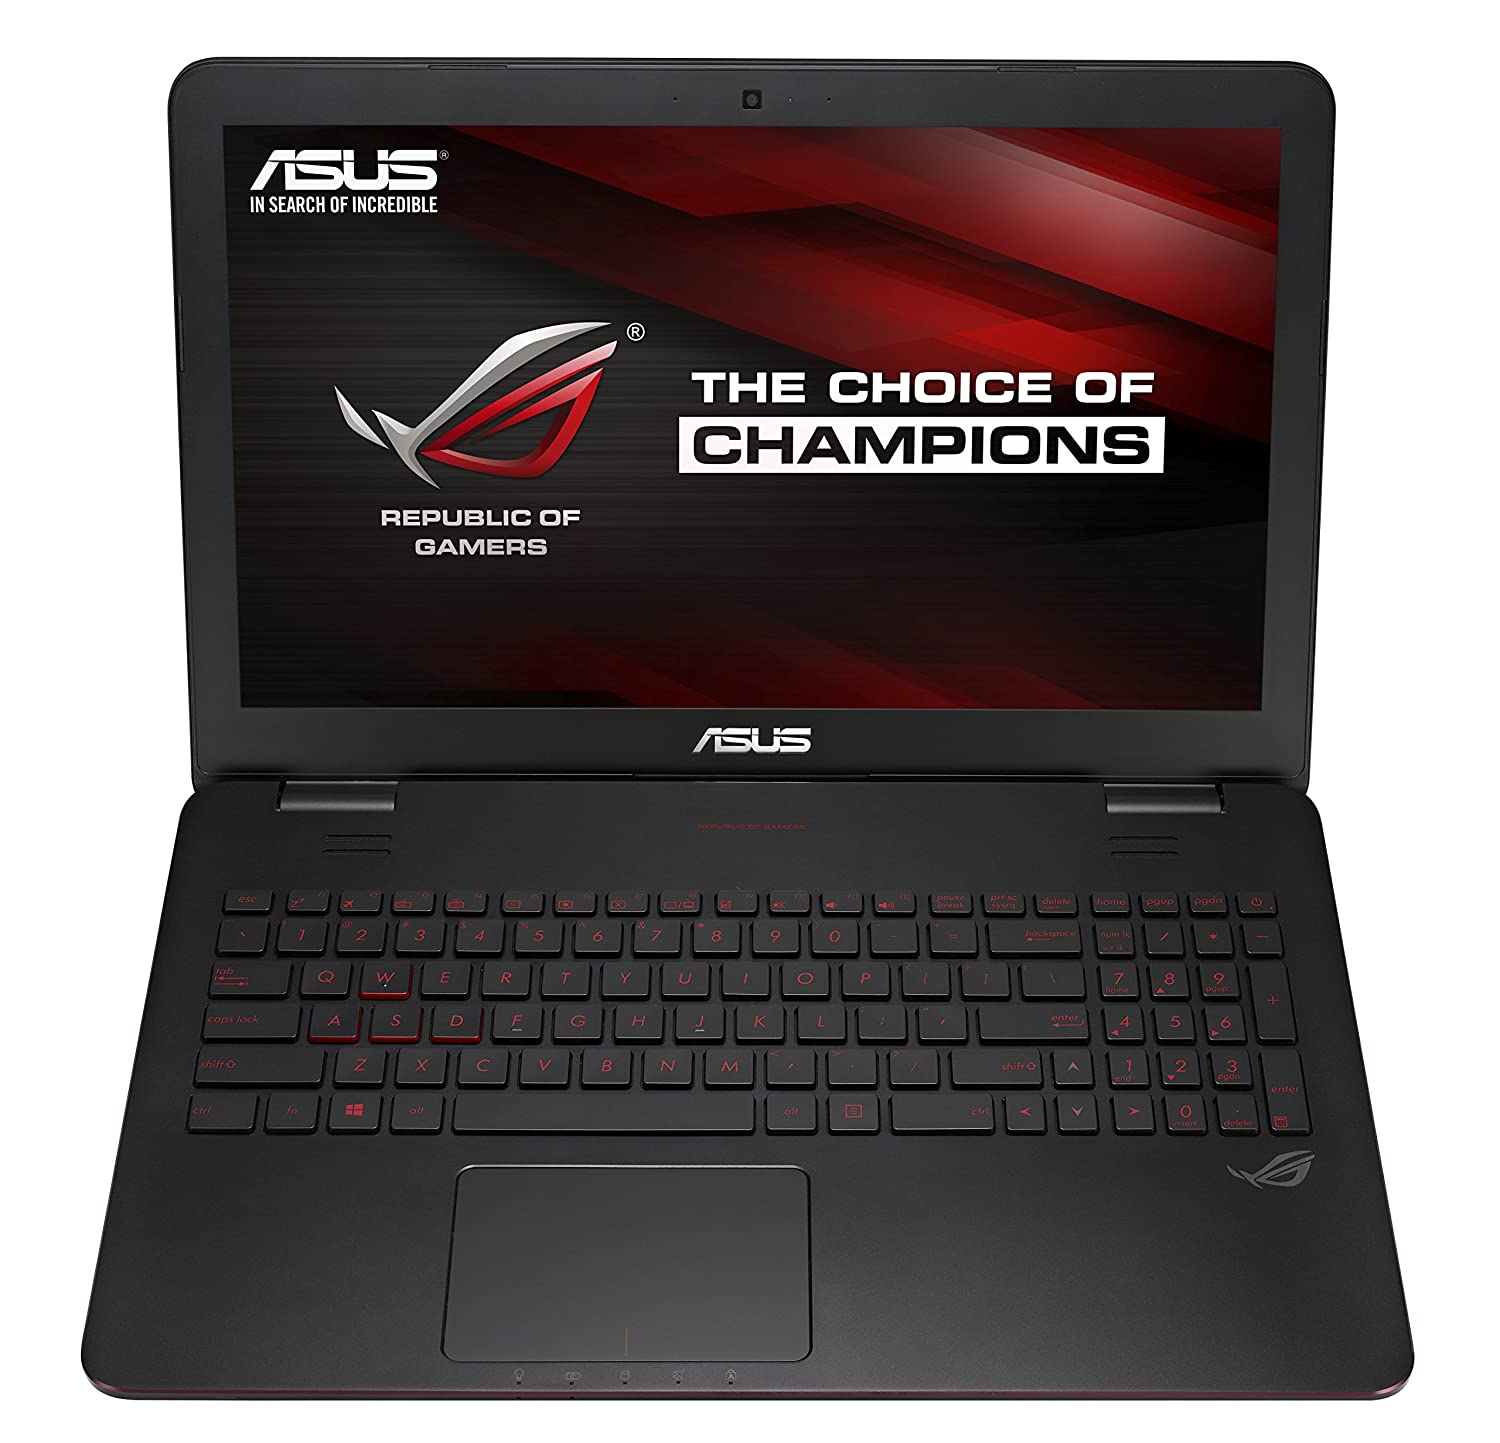 Amazon.com: ASUS ROG GL551 Series GL551JW-DS71 15.6-Inch Gaming Laptop 4th Generation (Intel Core i7-4720HQ 2.60 GHz, 16 GB Memory, 1 TB HDD, NVIDIA GeForce ...